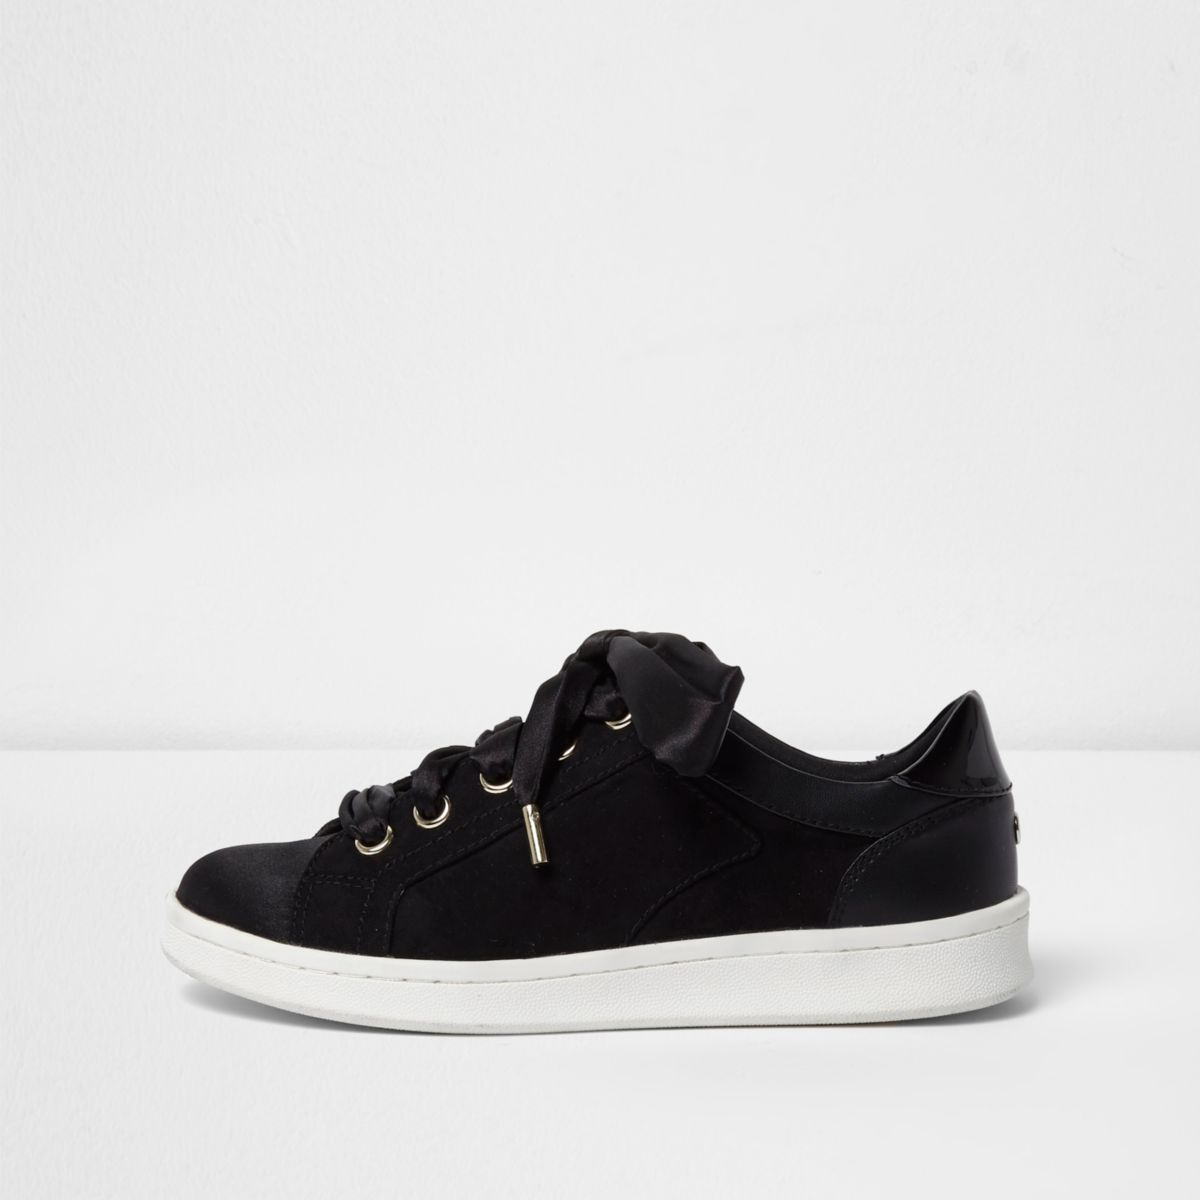 Black ribbon lace-up sneakers